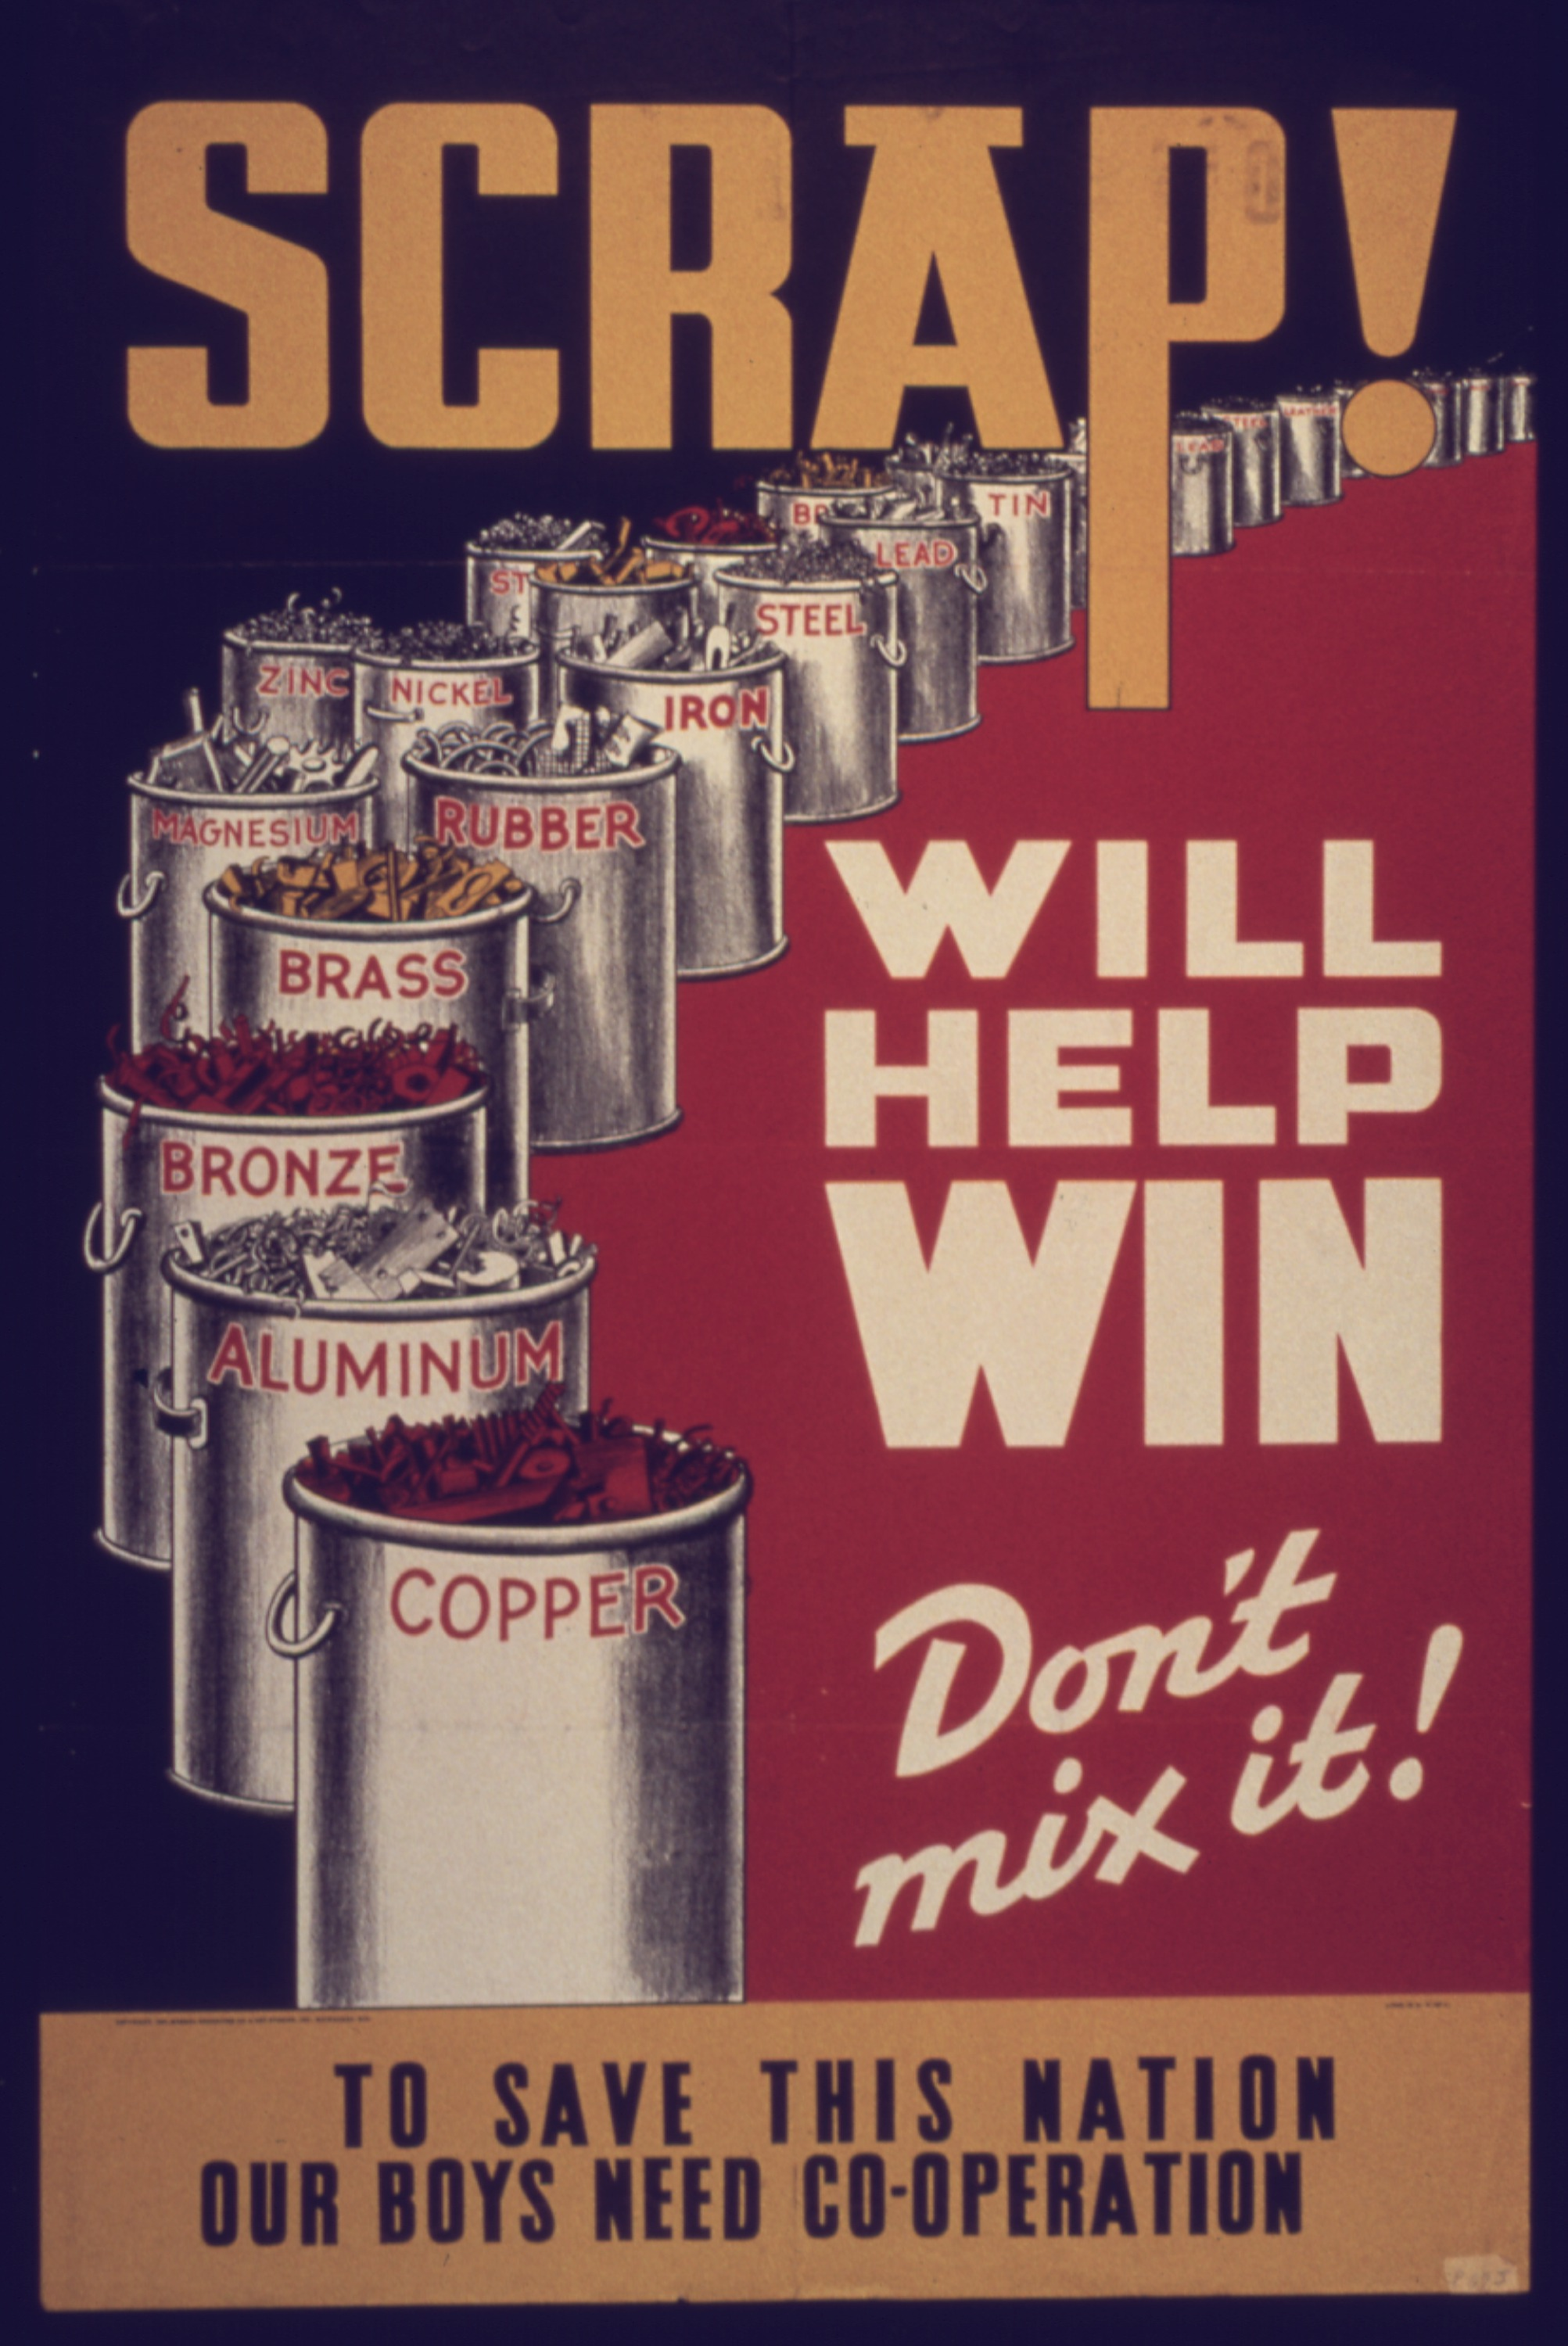 Scrap - Will Help Win - Quelle: Wikicommons http://upload.wikimedia.org/wikipedia/commons/9/9b/Scrap%5E_Will_Help_Win._Don%27t_Mix_it_-_NARA_-_533977.jpg